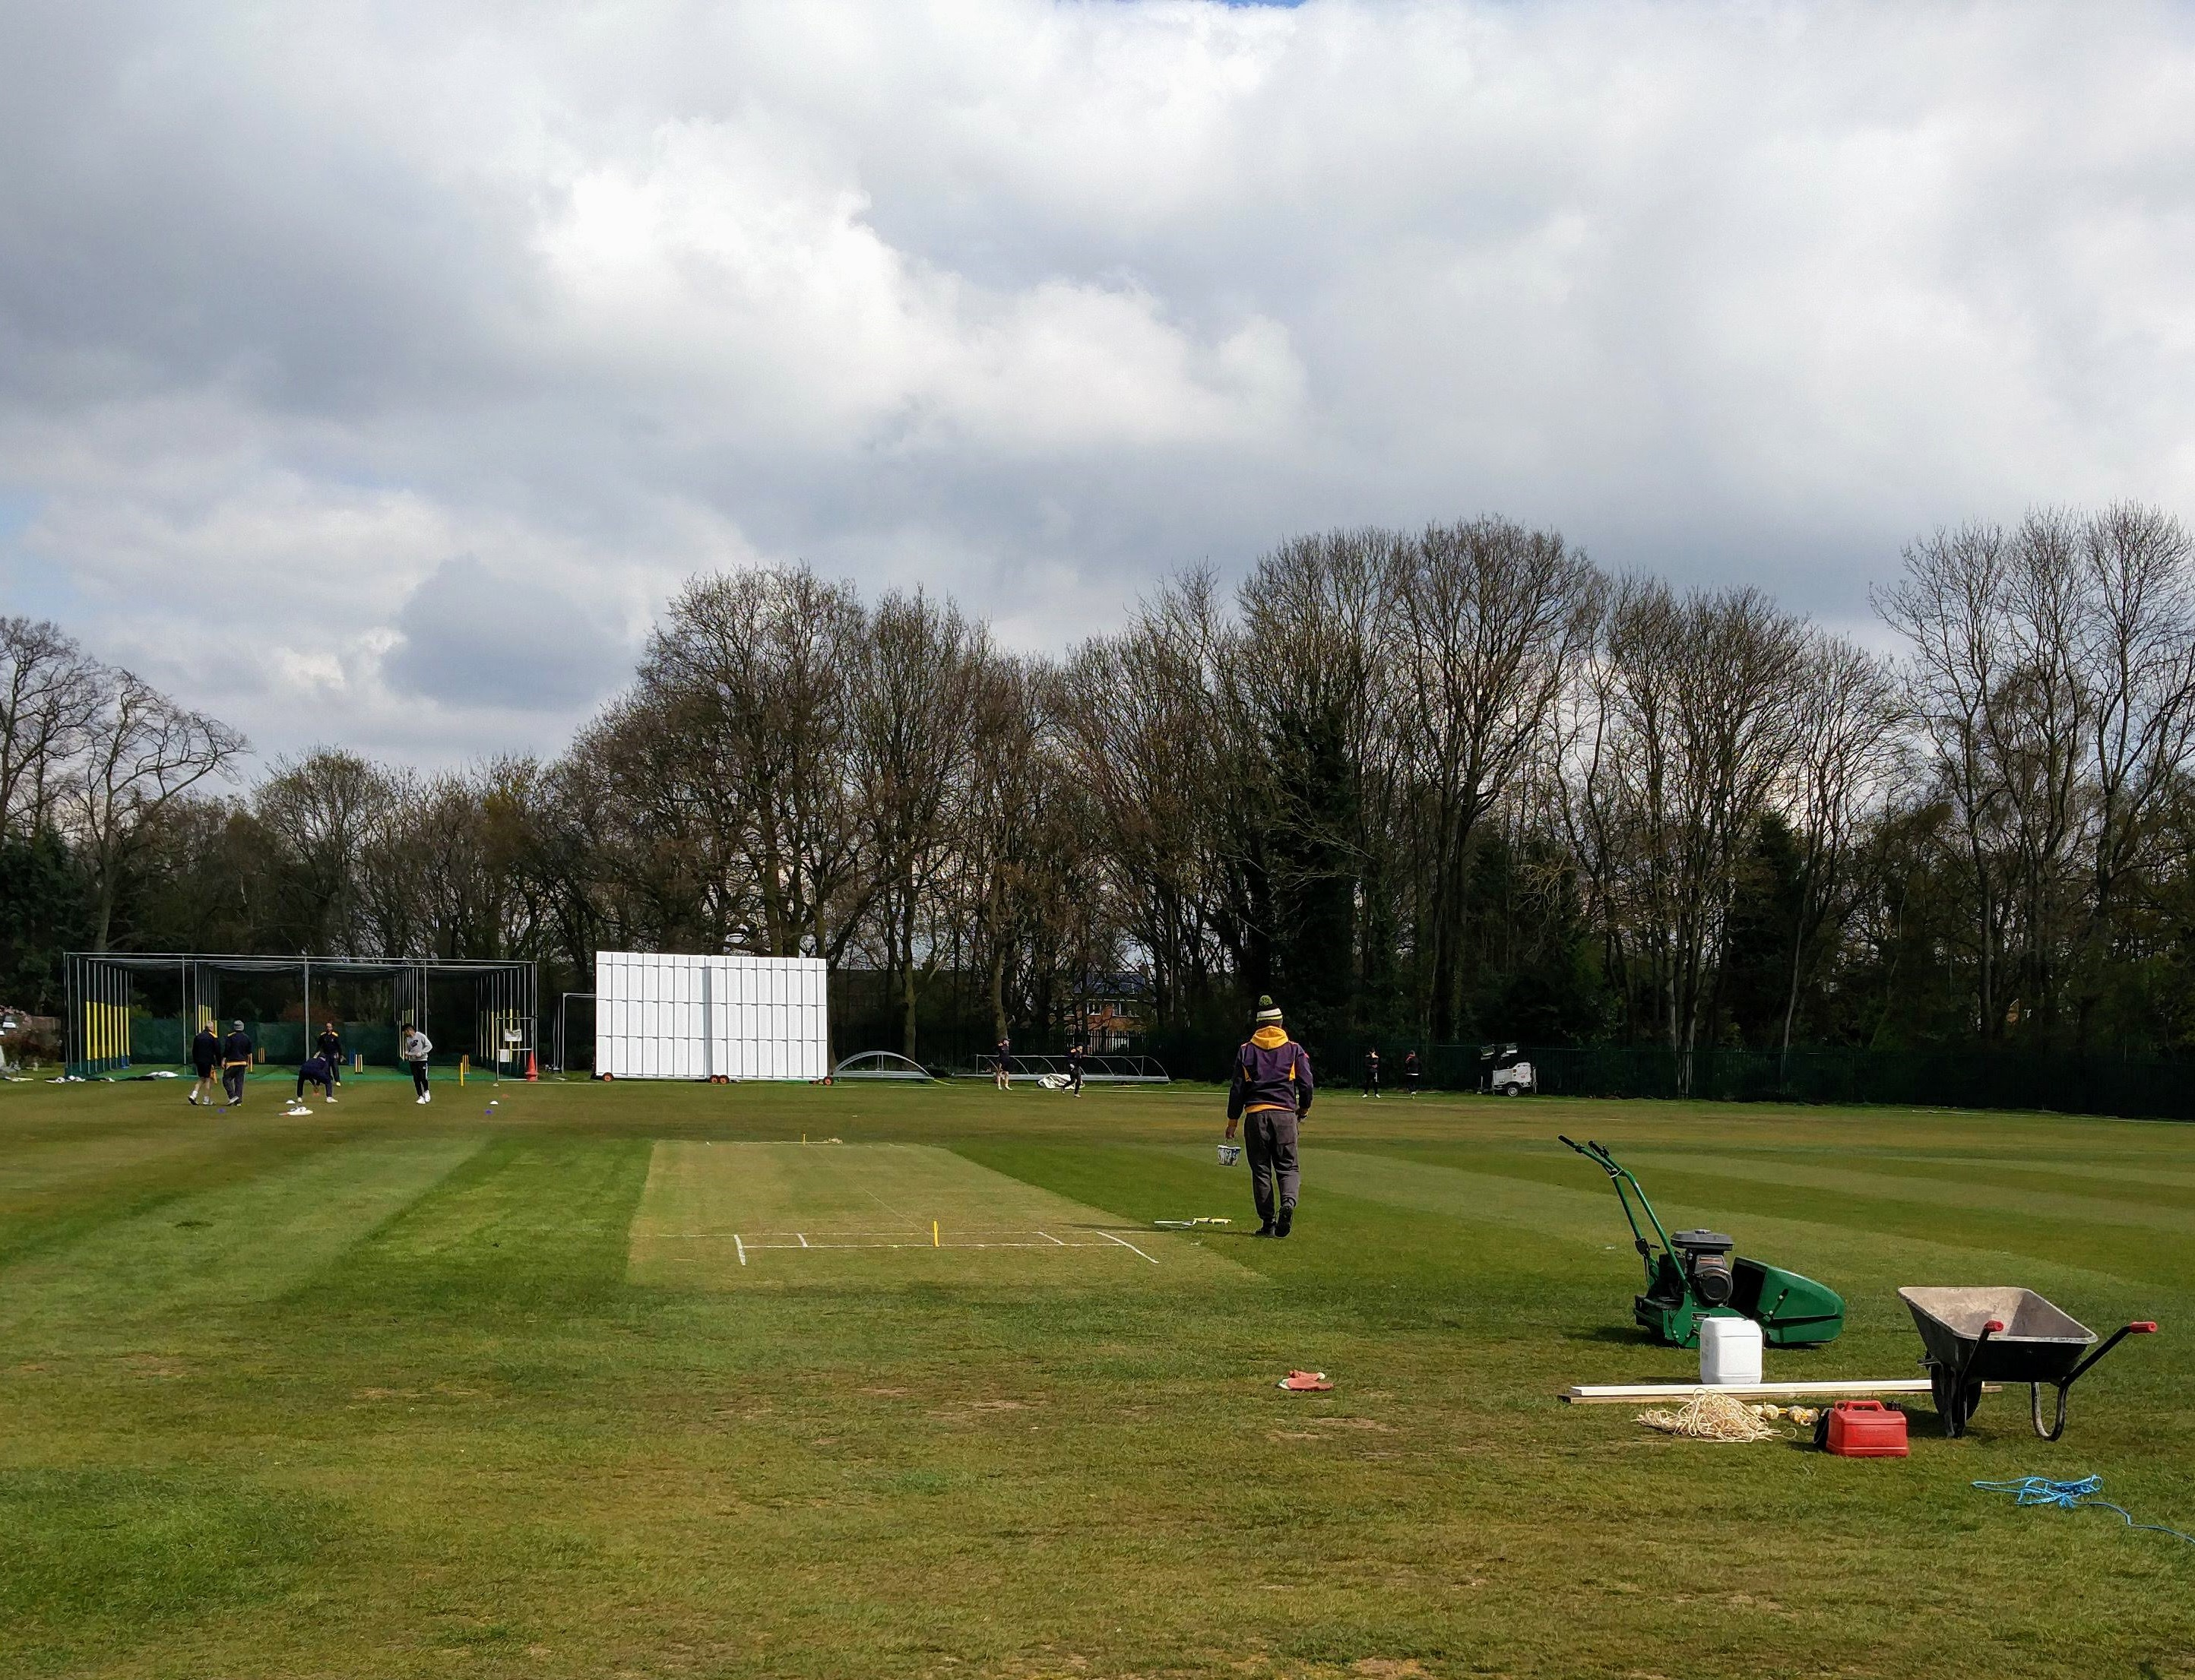 Match Report: Saturday 1sts vs Leamington 1sts